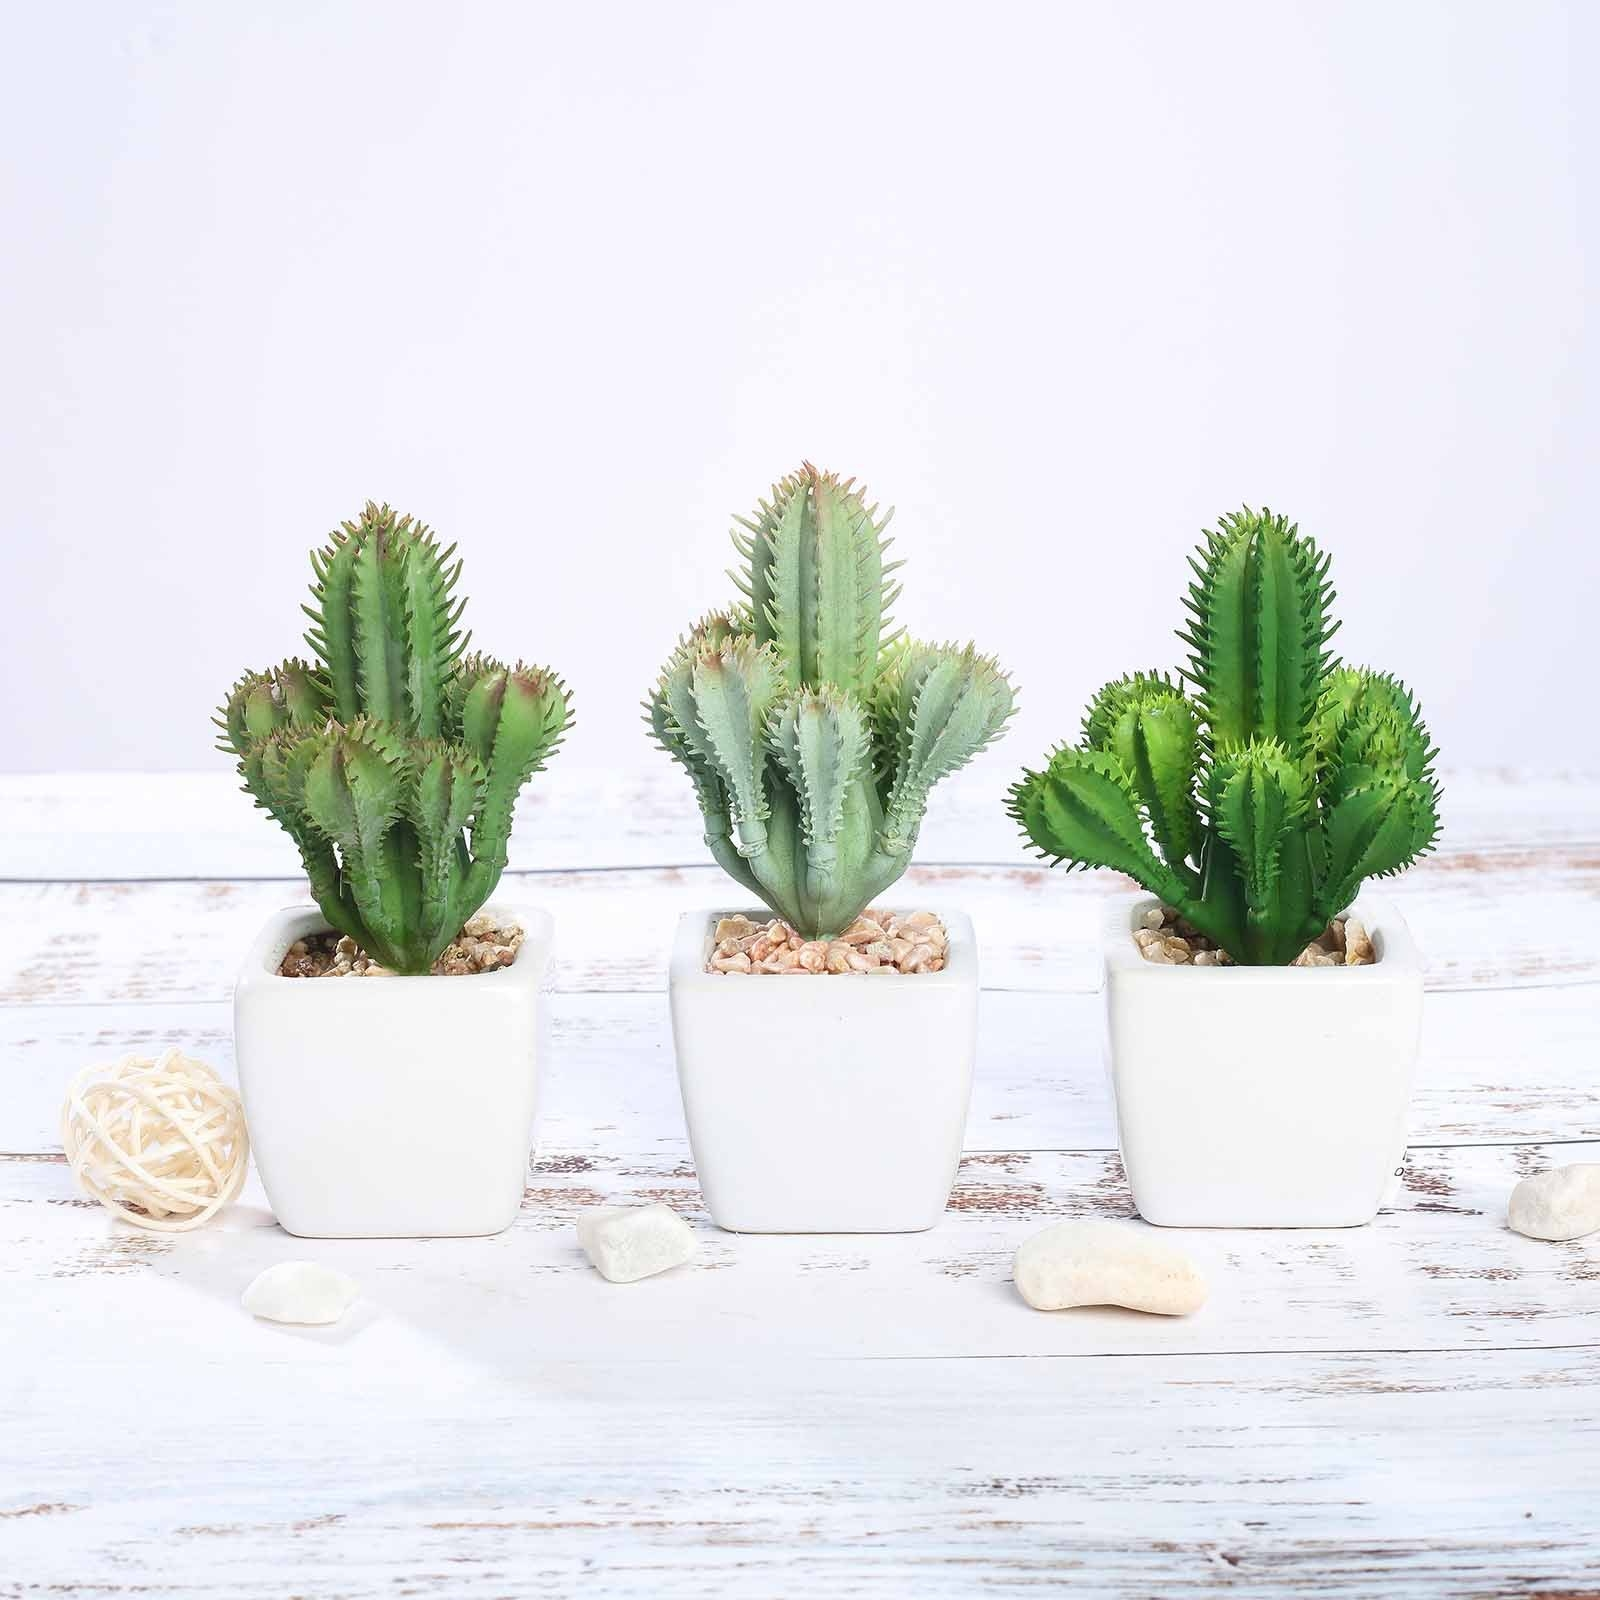 Three of the cacti lined up on a white table